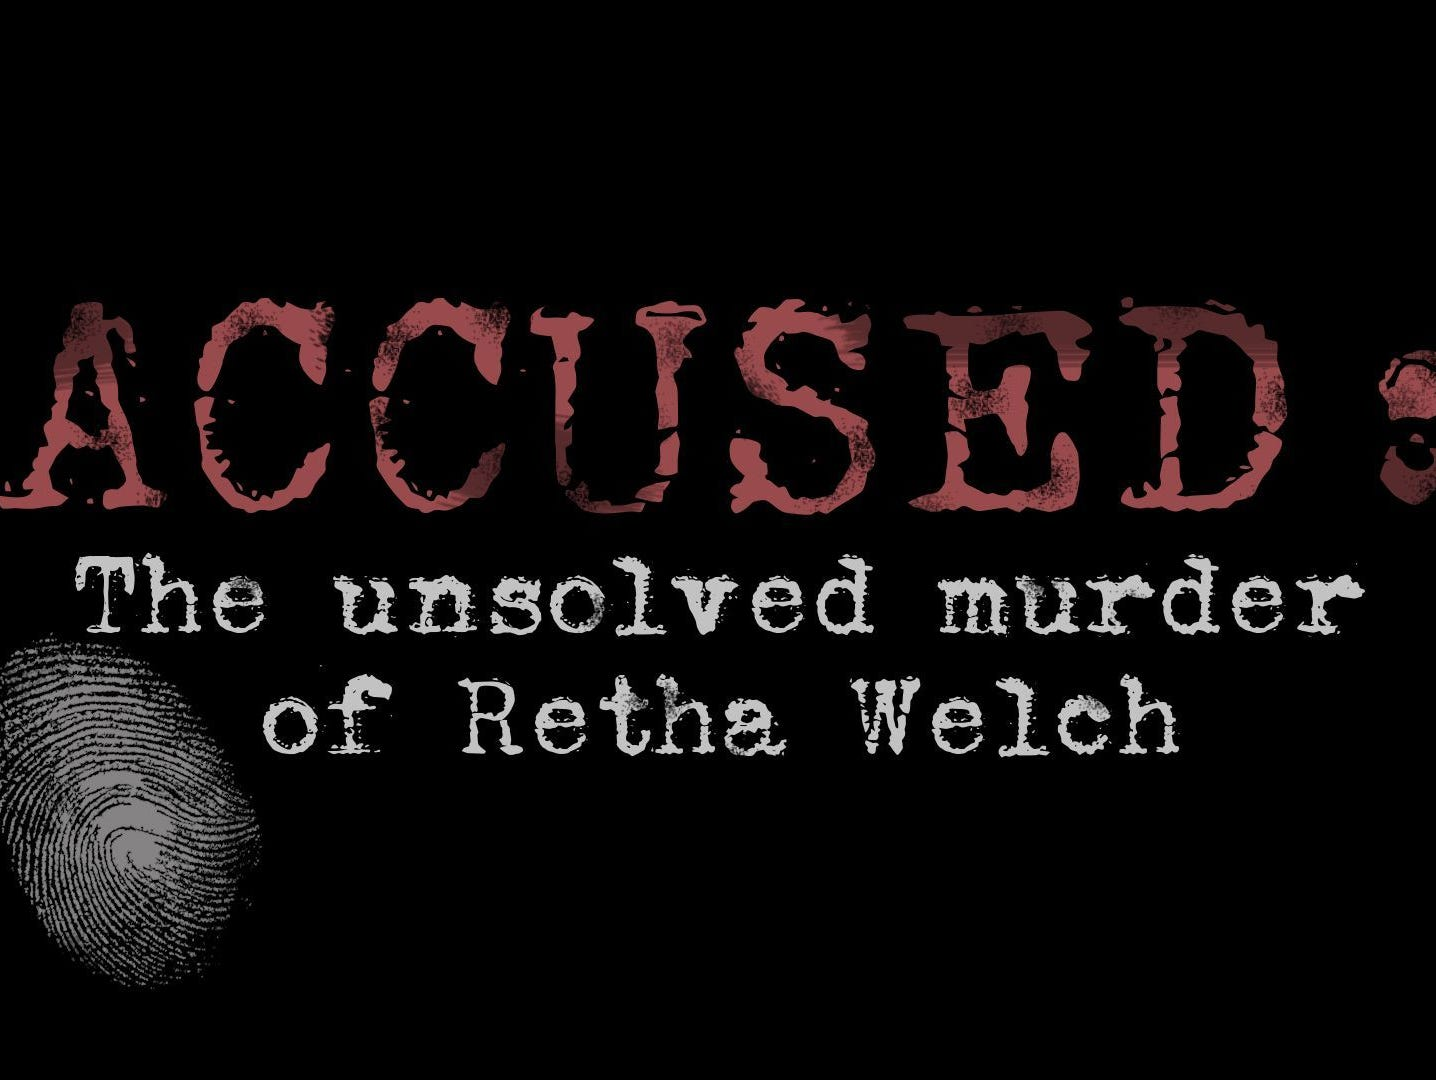 Listen to the true crime podcast that received over 8 million plays.